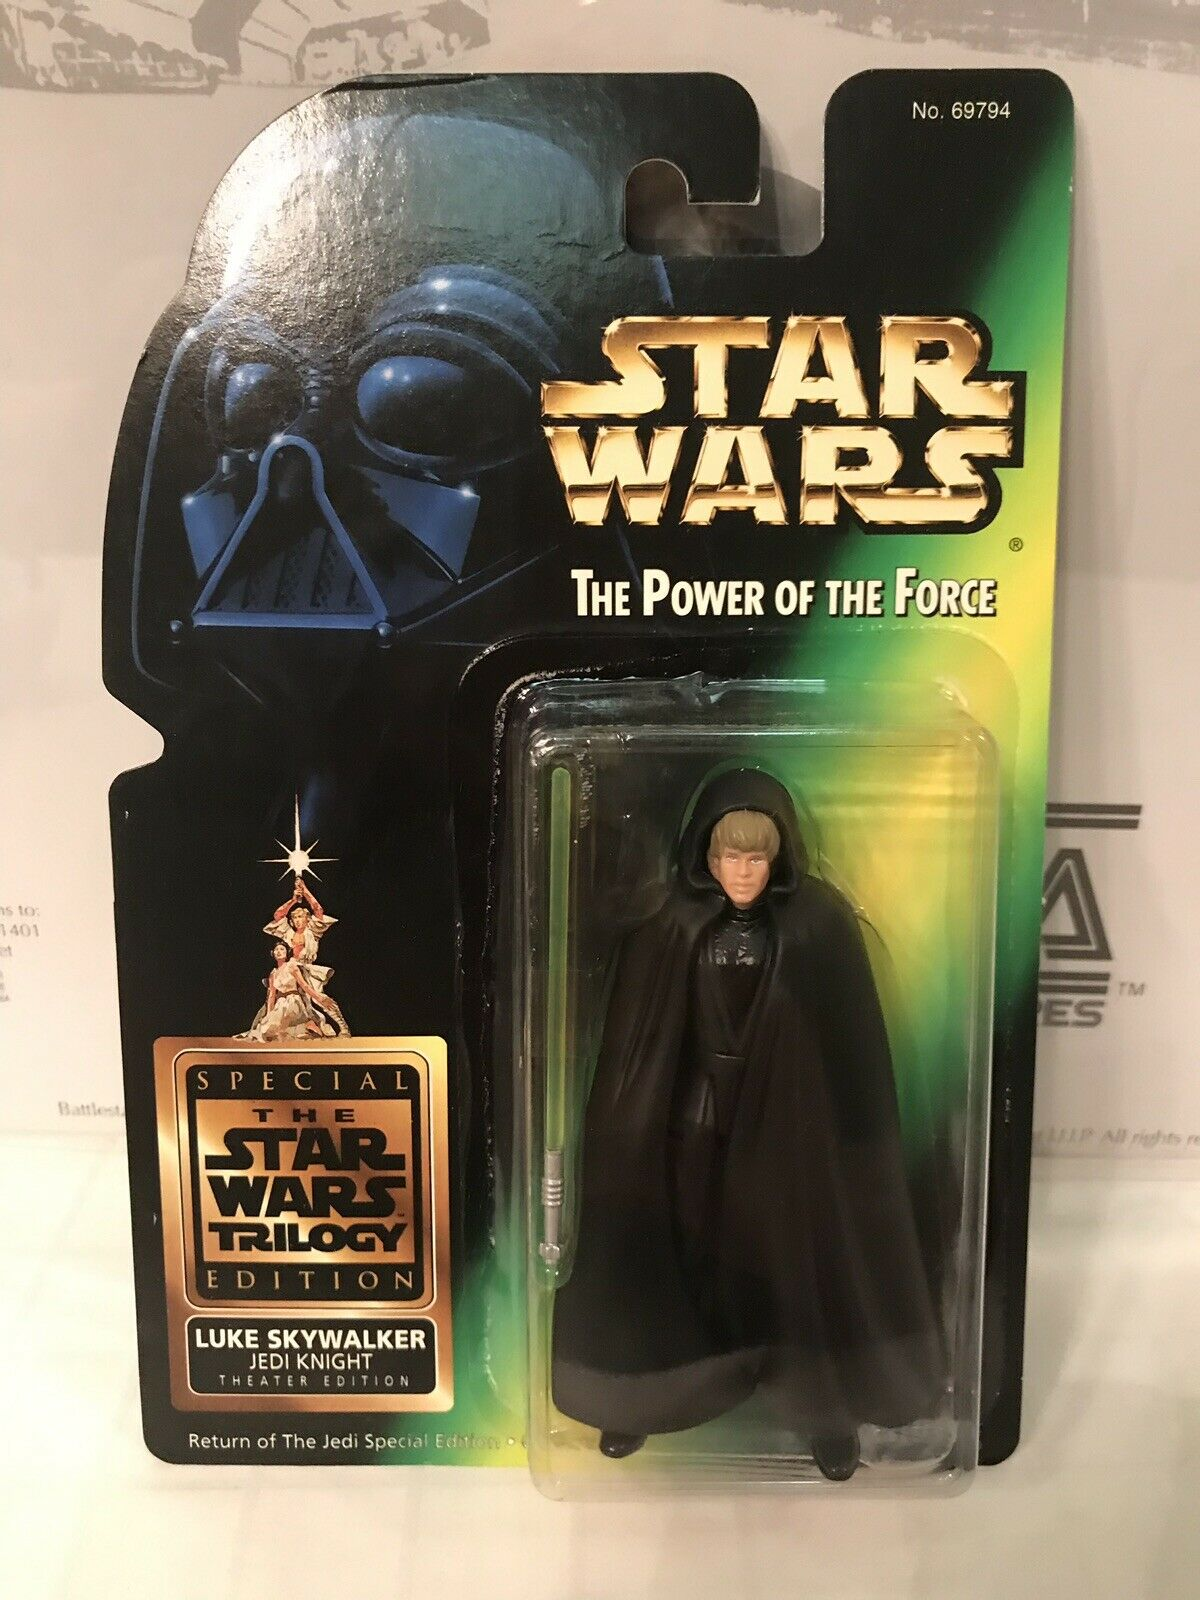 Star Wars The Power Of The Force Luke Skywalker Jedi Knight Theatre Edition